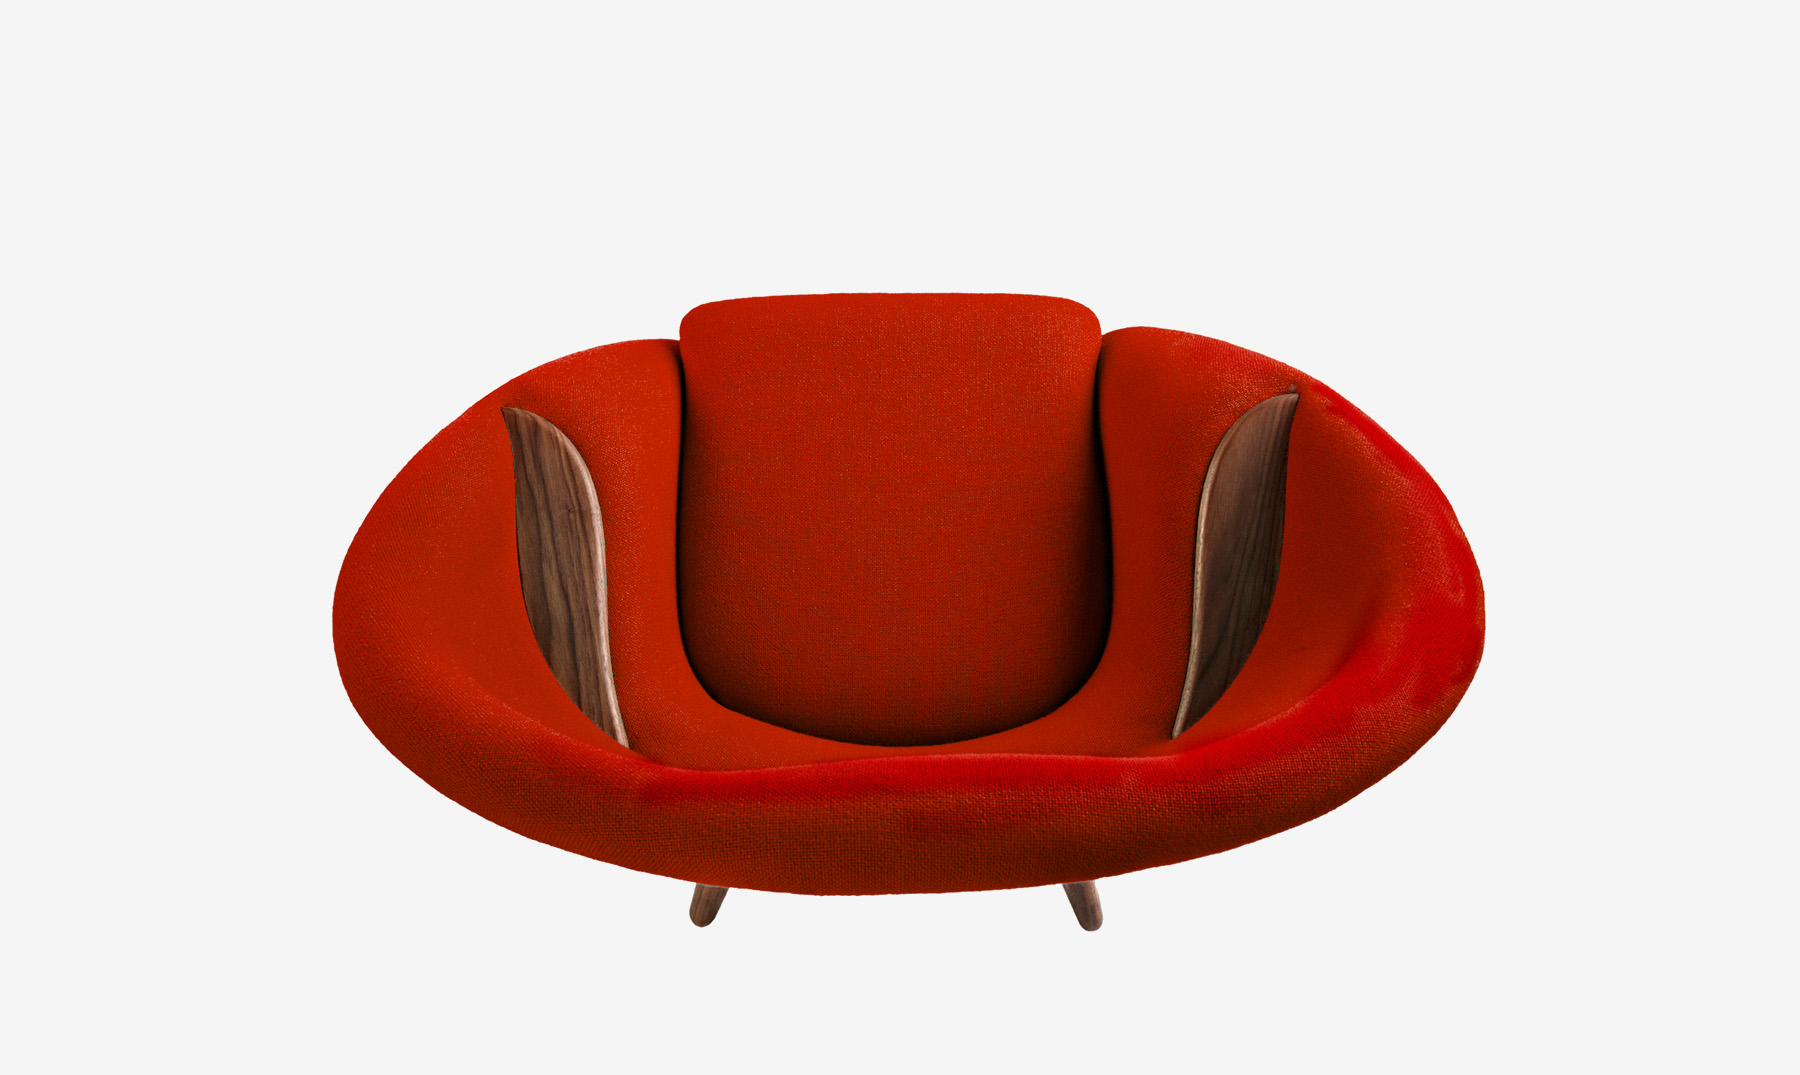 BrdrPetersen_OdaChair_Model_01